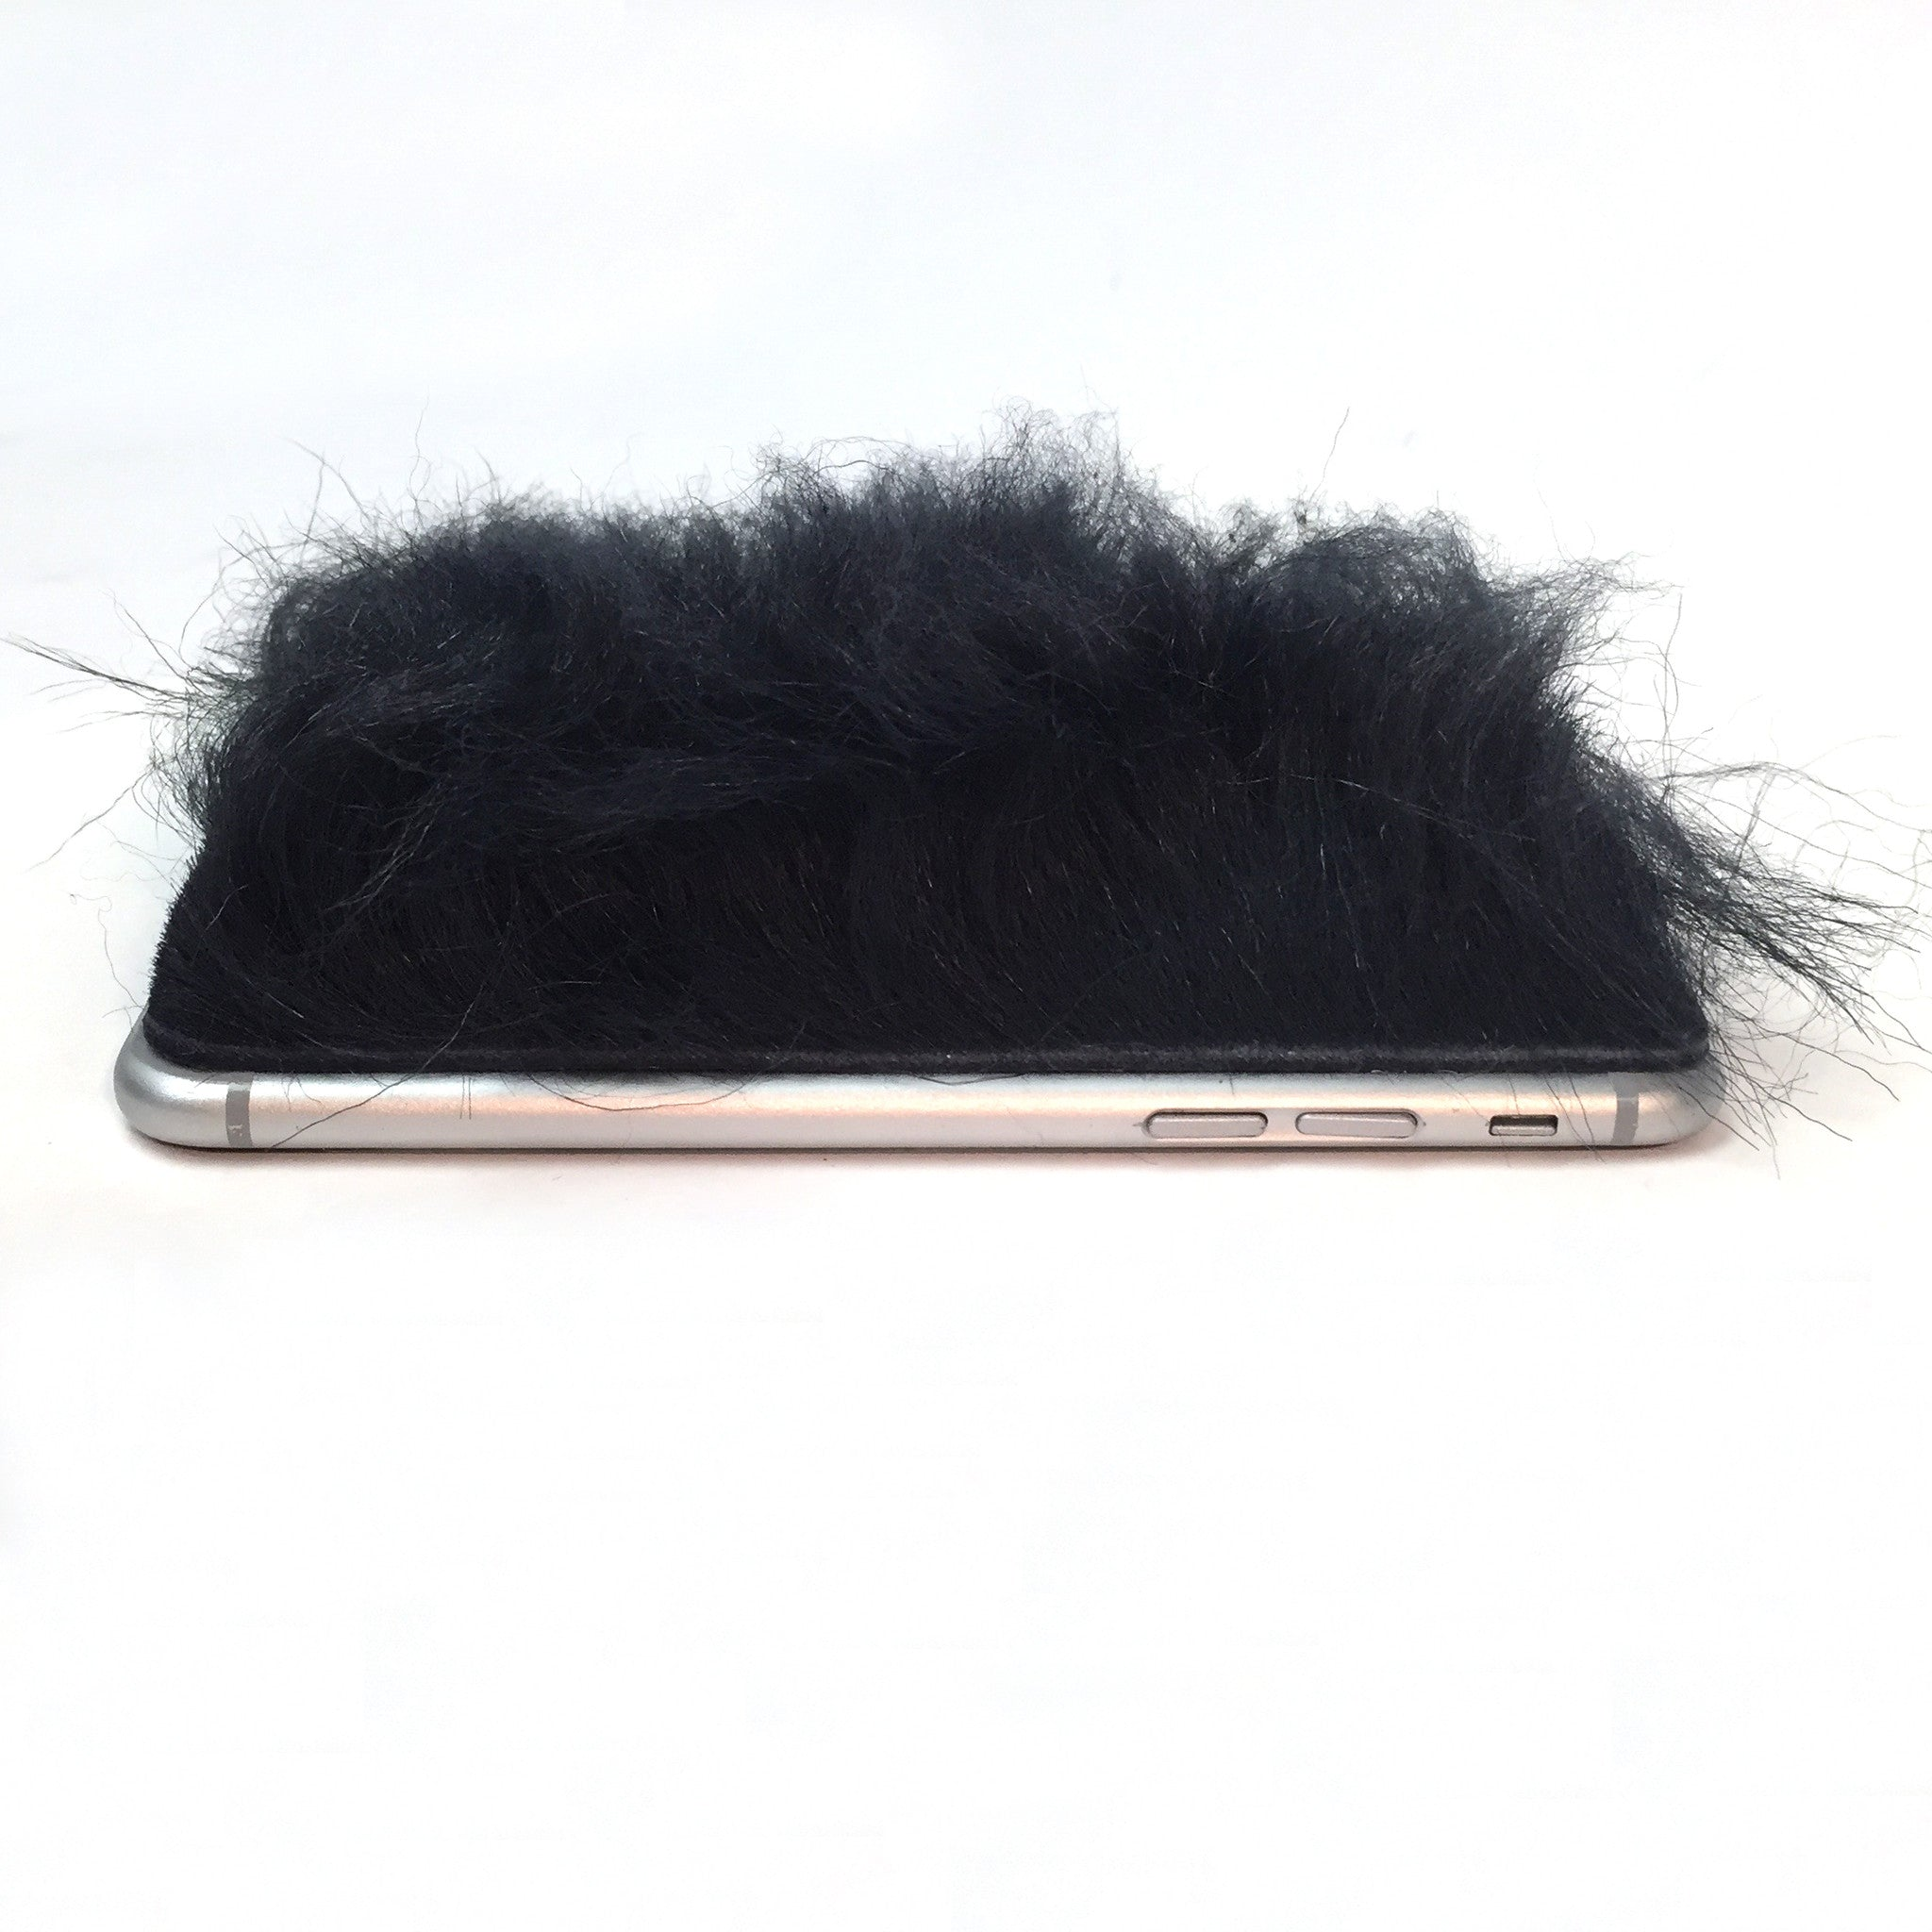 Navy Mongolian Lamb Fur iPhone 7 Leather Skin